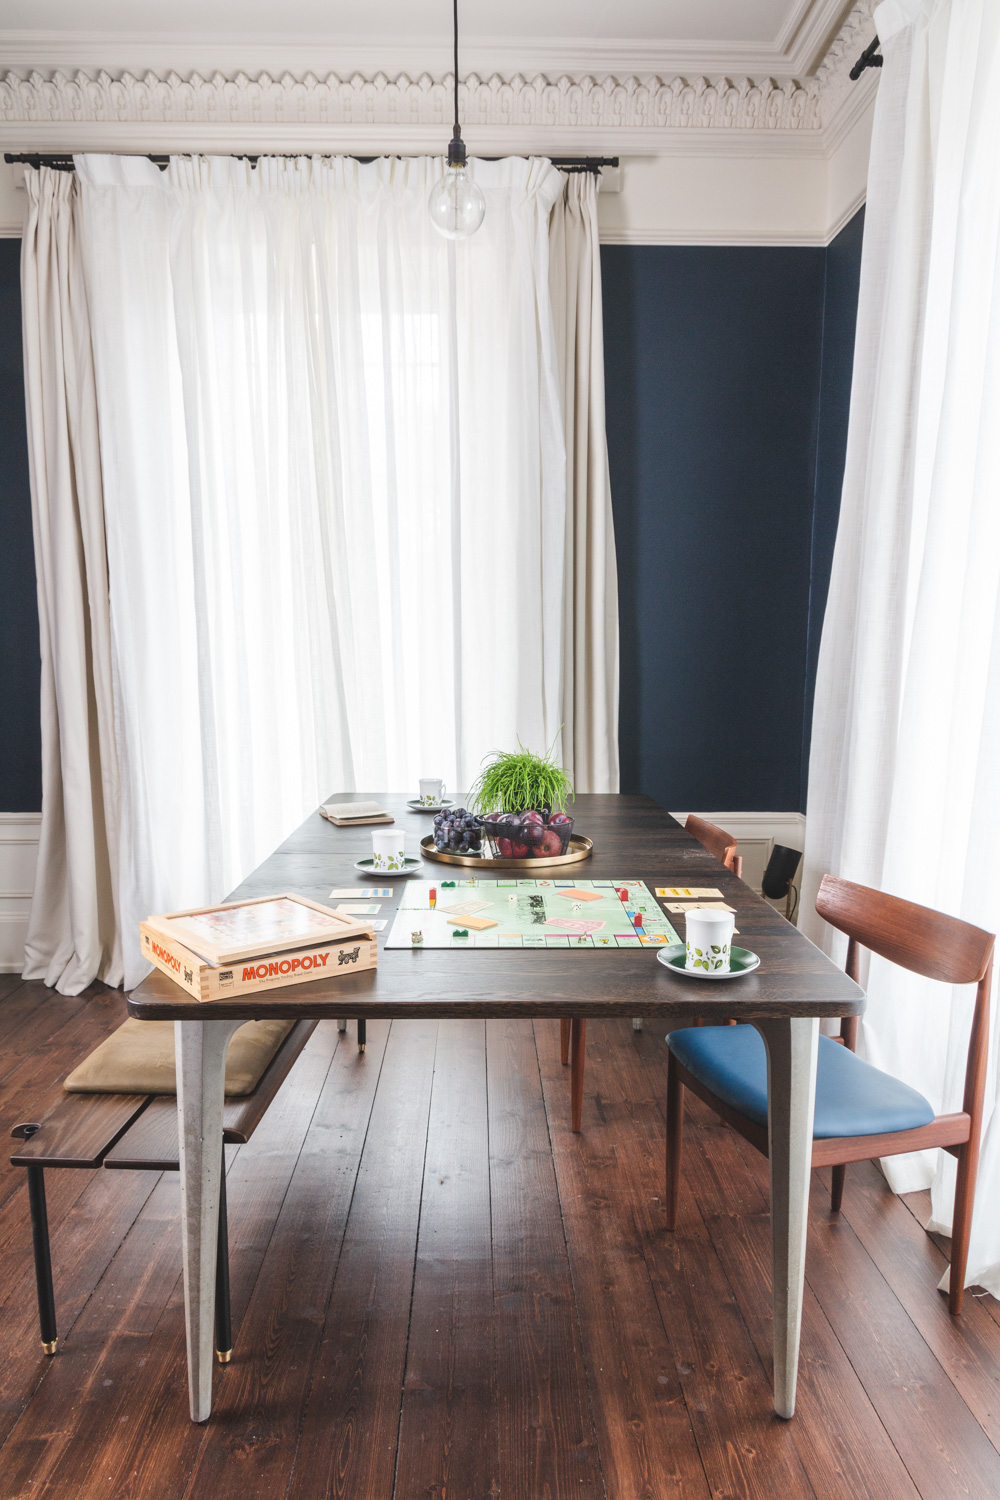 Breakfast, ping pong AND boardgames. Our Drawing Room is super versatile.